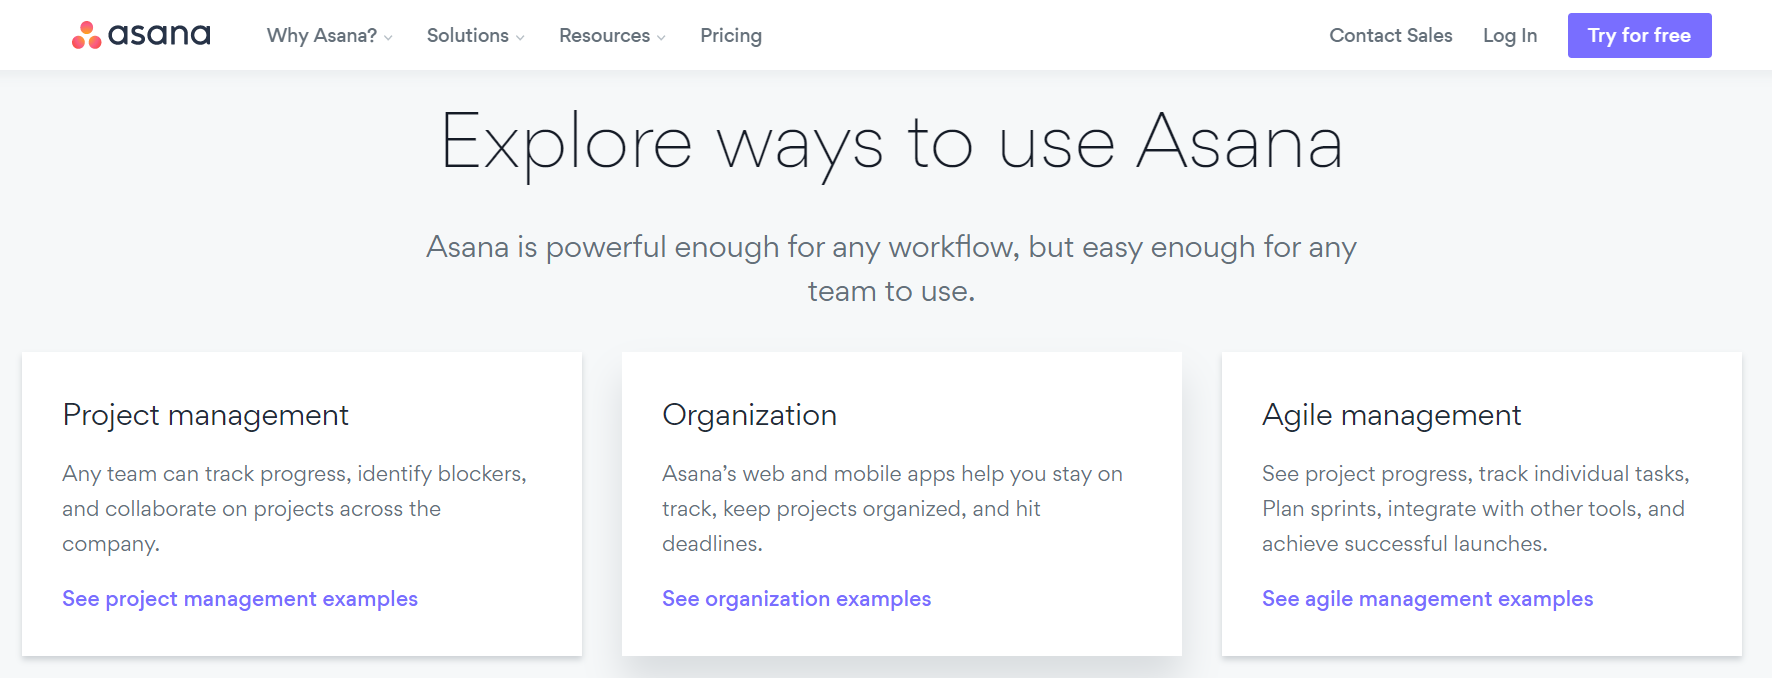 Asana landing page - saas marketing